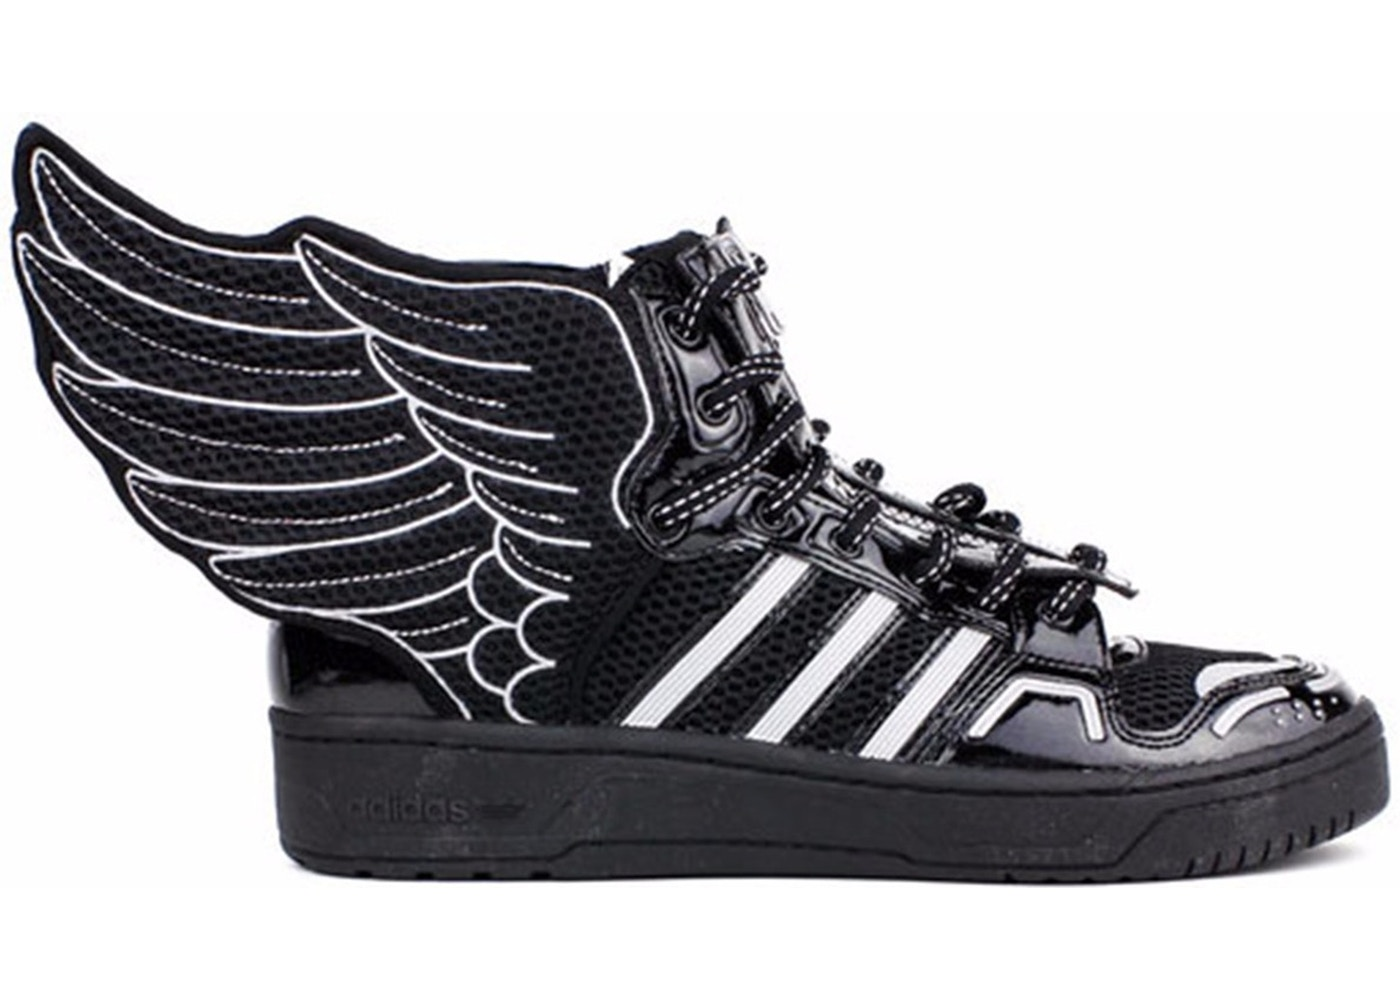 Triatleta salud cuero  adidas JS Wings 2.0 Jeremy Scott Mesh Black - S77802